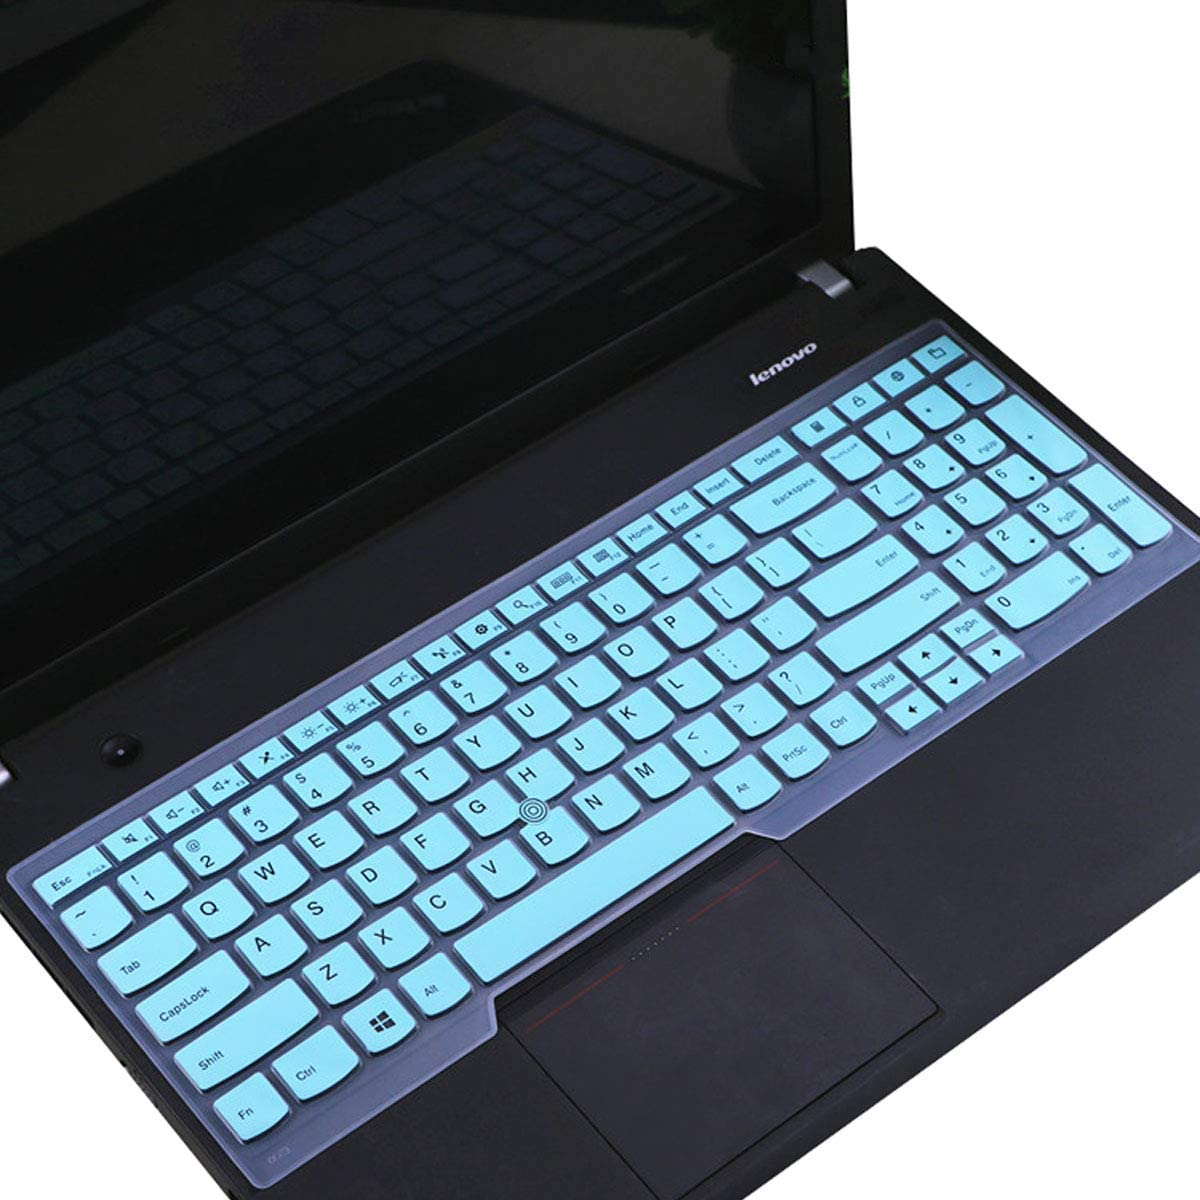 "Keyboard Cover Design for Lenovo Thinkpad 15.6"" W540 W541 W550 L560 L570 T550 T560 P50 P50s P70 P71